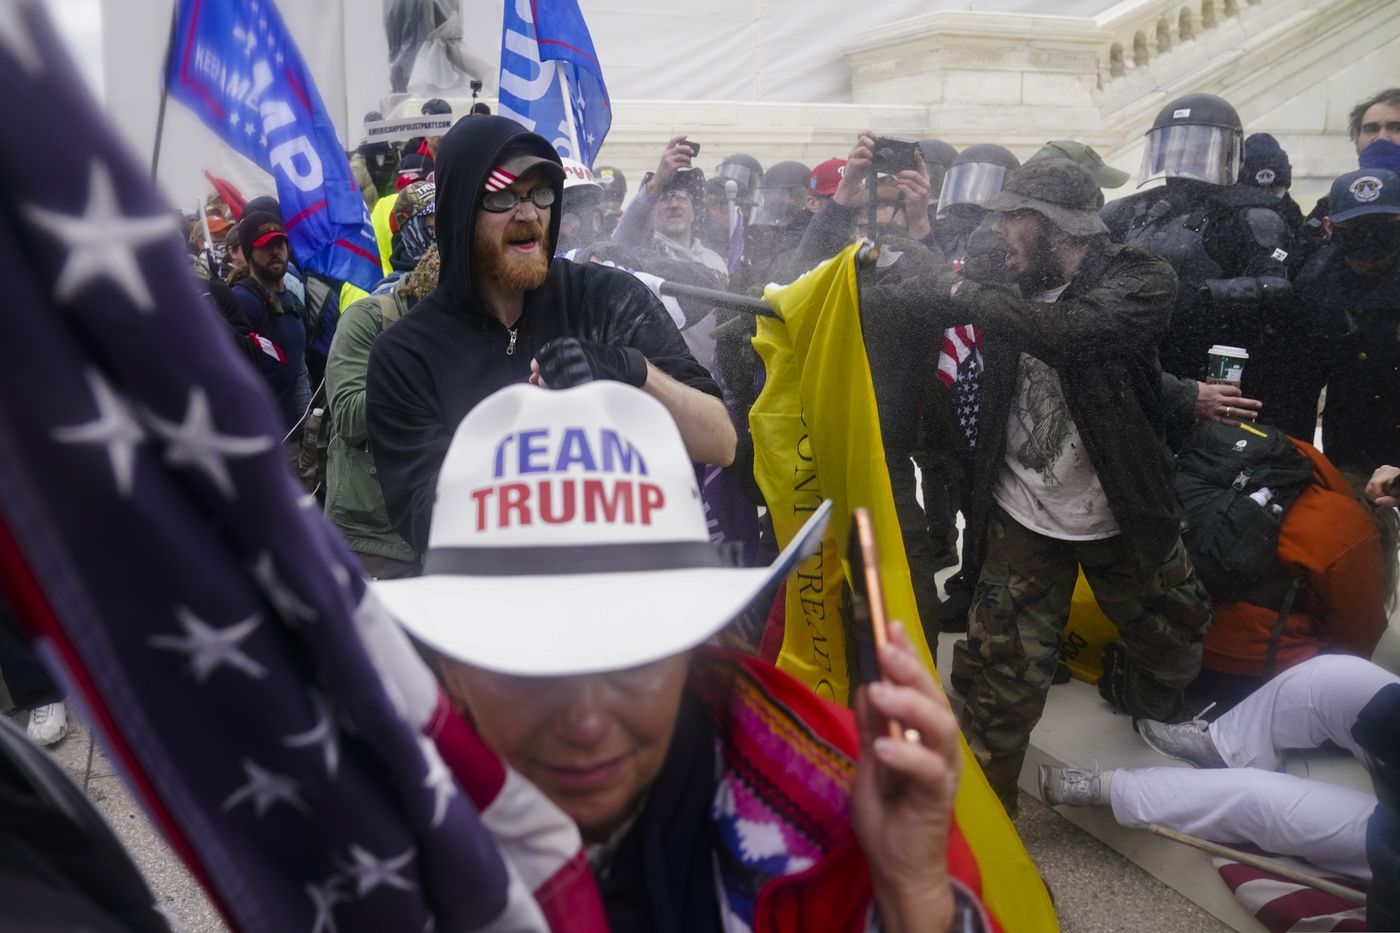 Trump supporters try to break through a police barrier at the Capitol in Washington. (AP Photo/John Minchillo, File)